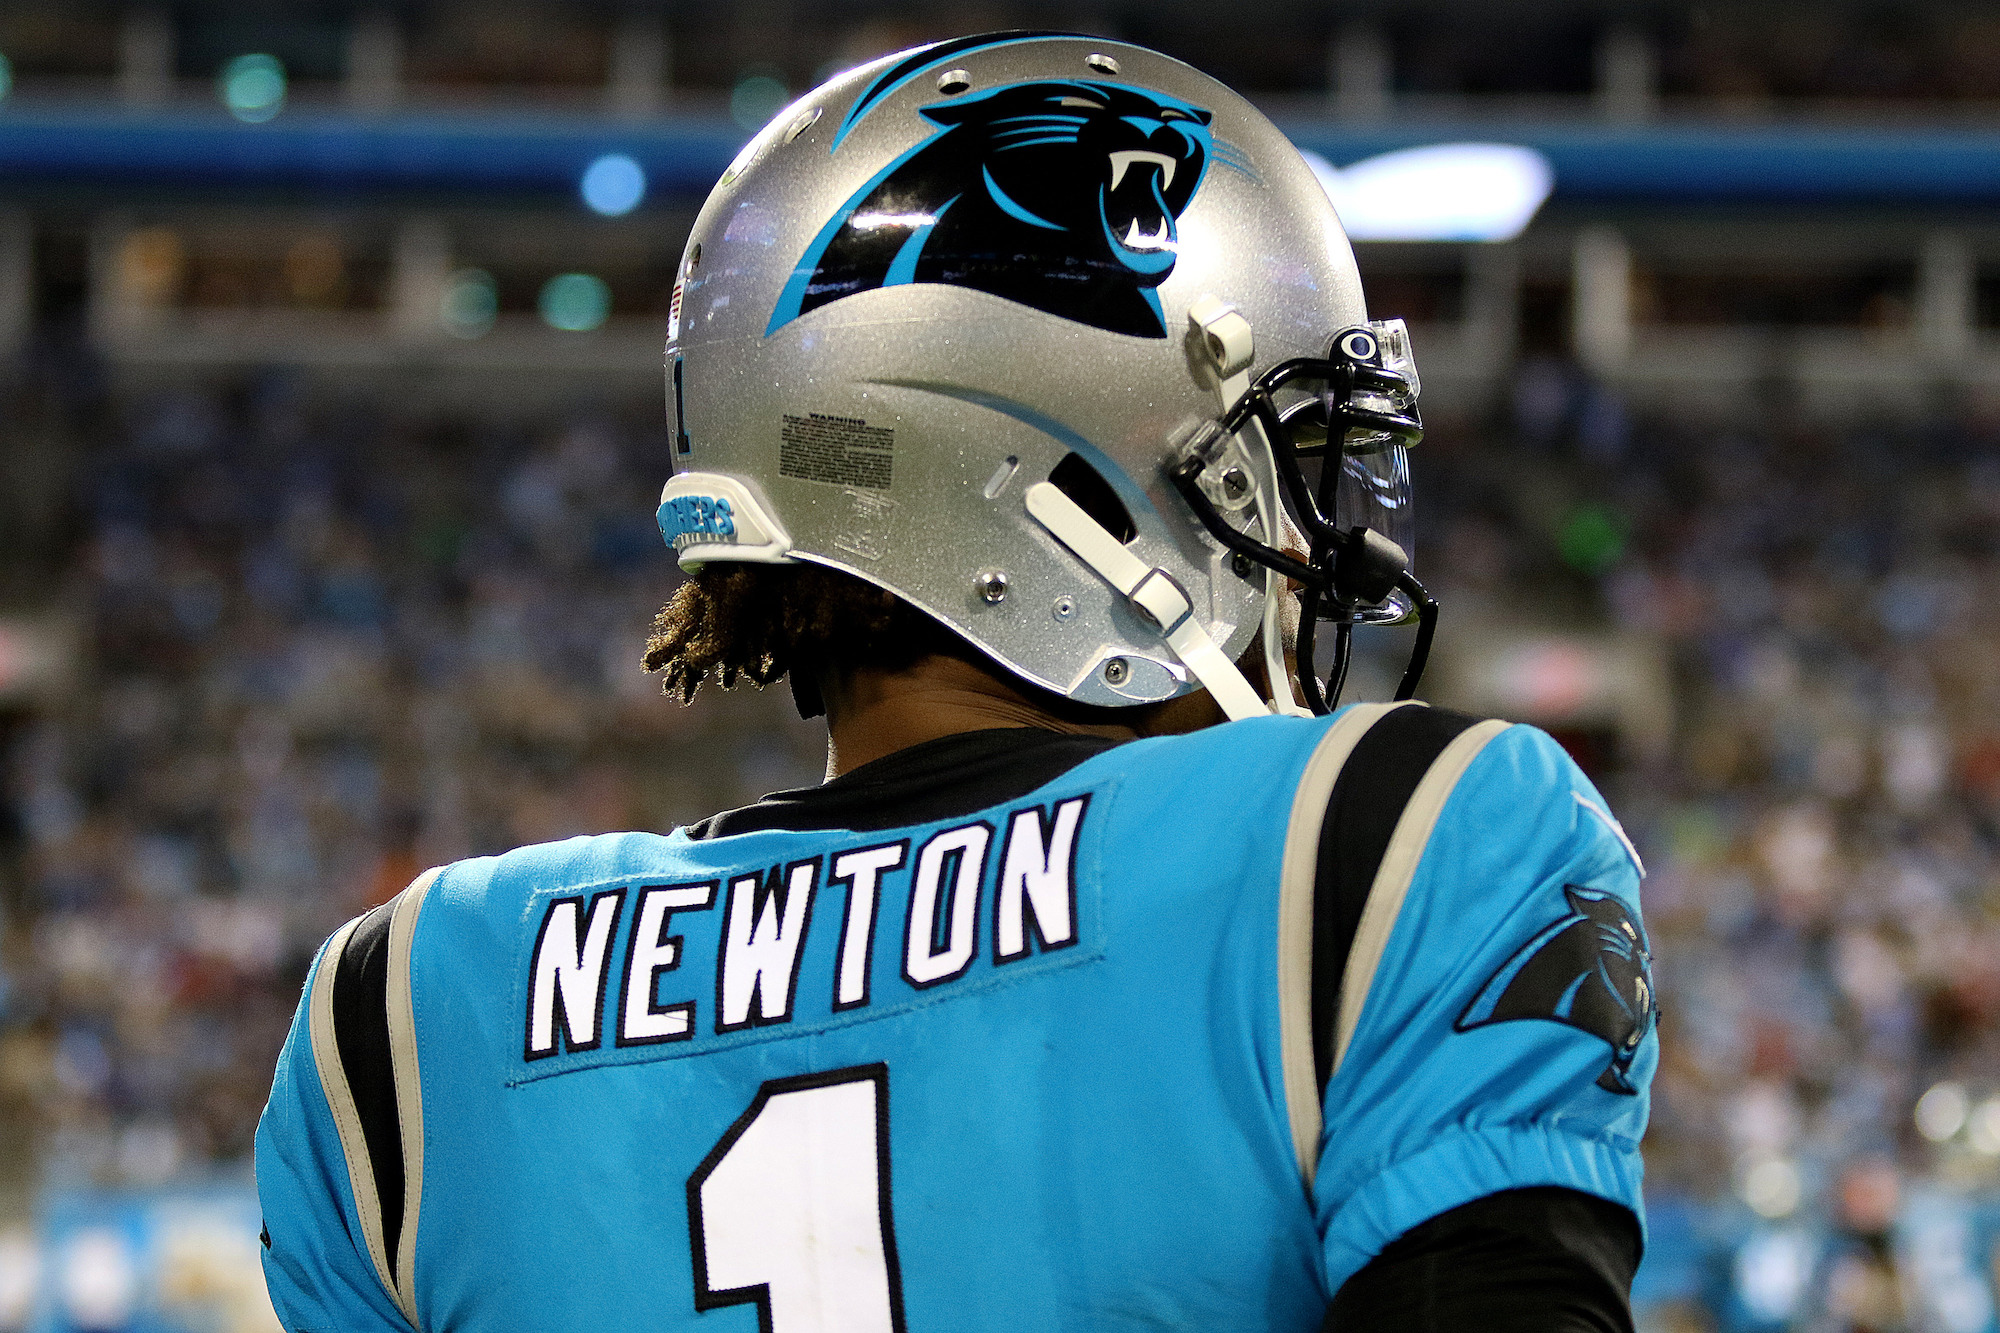 Even if Cam Newton leaves New England after this season, the Patriots could still score a nice bonus.